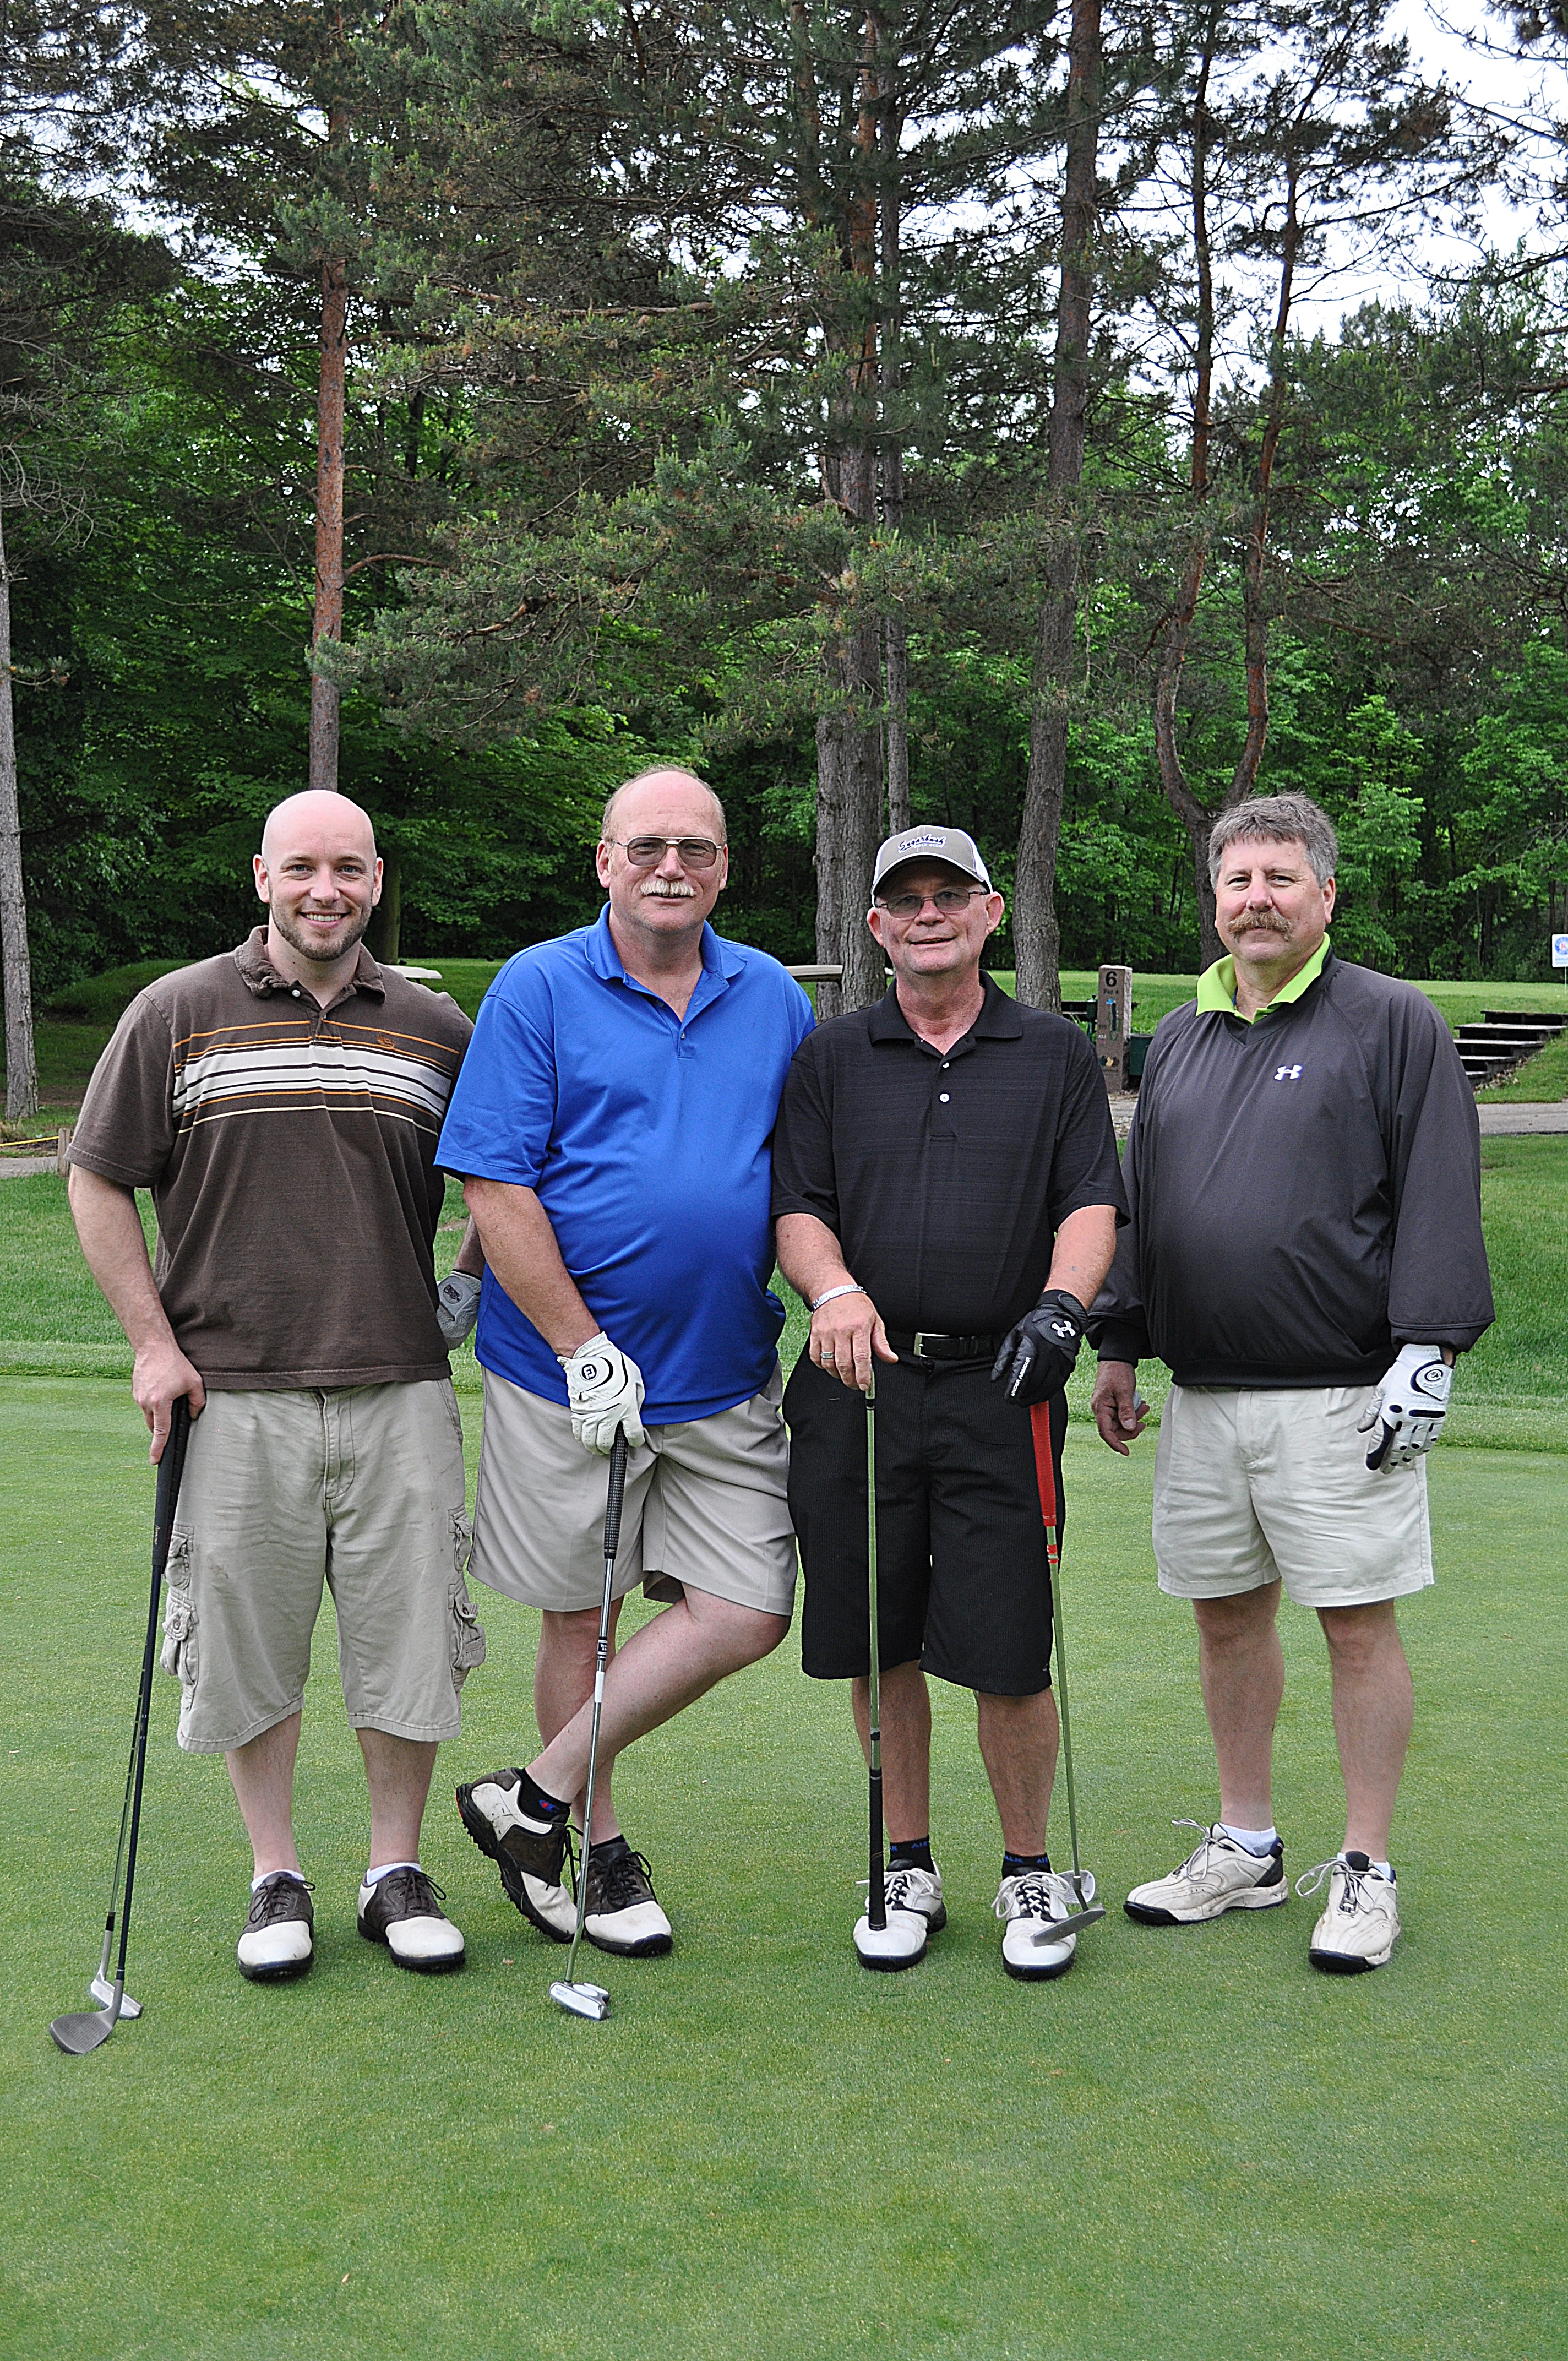 Harold Green's team at the 2013 FCFC Outing